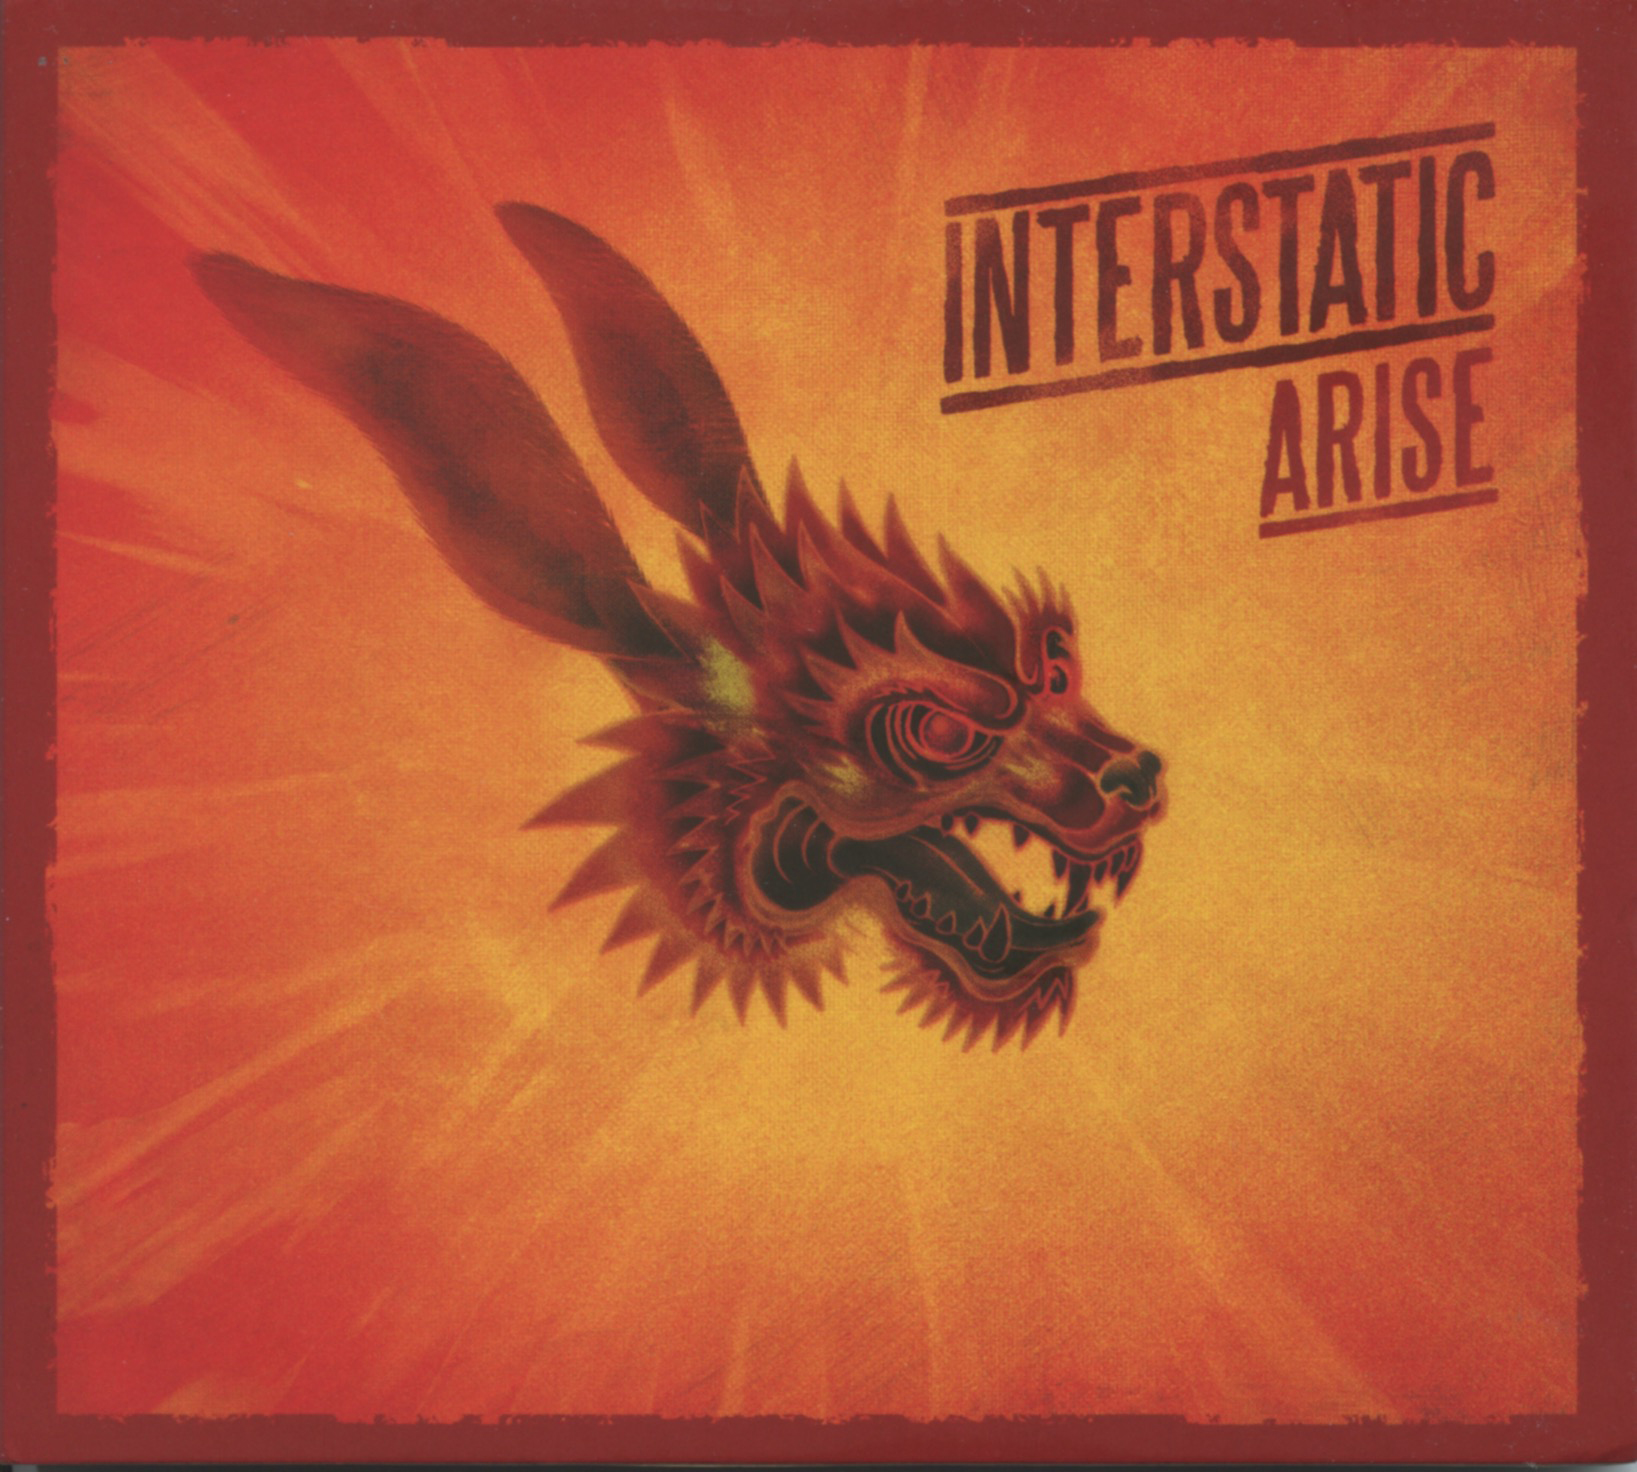 """2014  Interstatic """"Arise"""" trio with Roy Powell and Jarle Vespestad  Rarenoise records"""